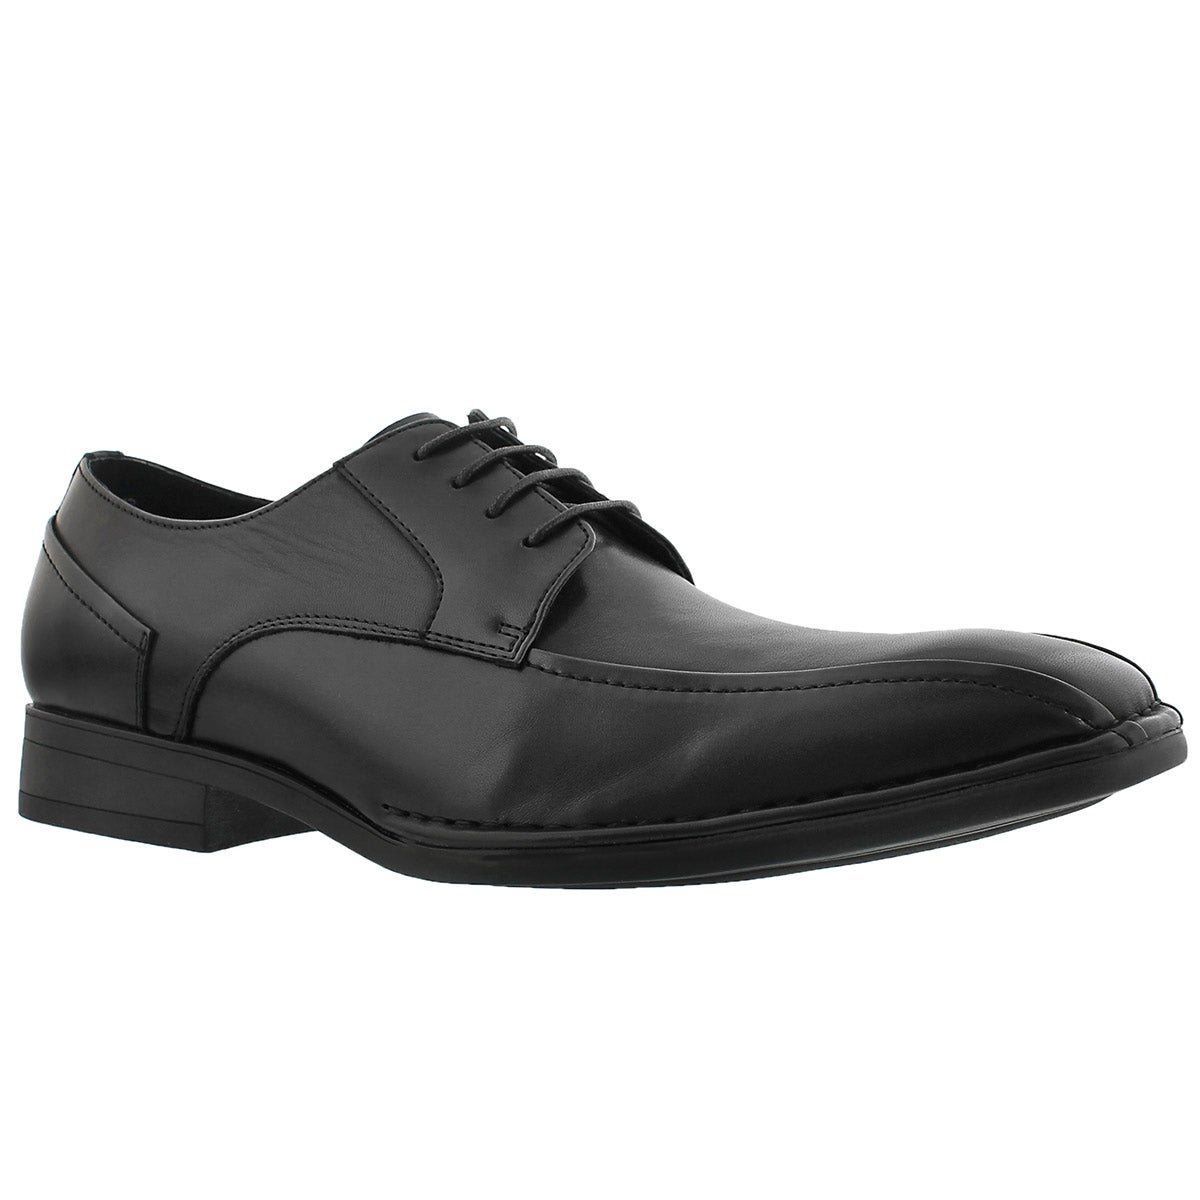 Mns Romeo blk dress oxford - Wide